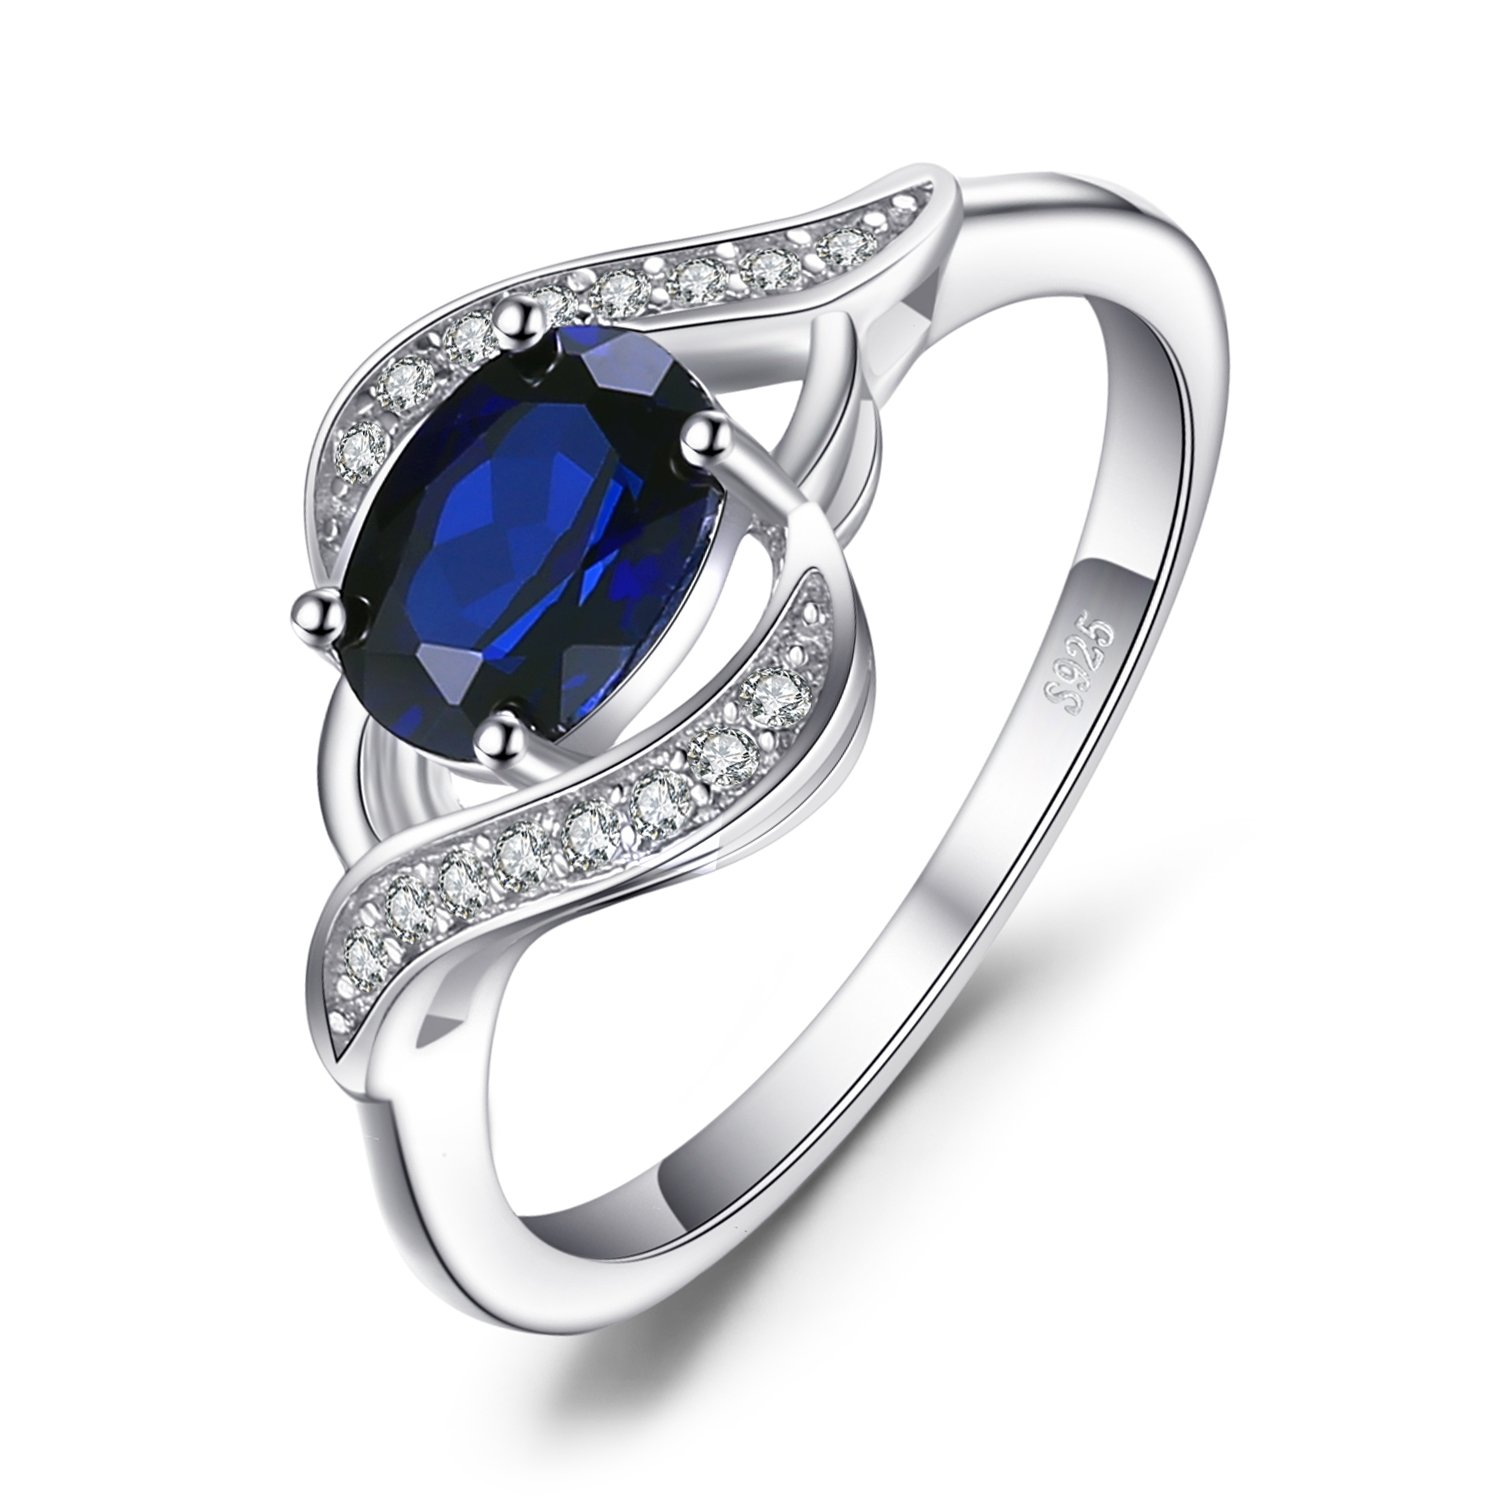 JewelryPalace 1.1ct Created Blue Sapphire Statement Ring 925 Sterling Silver Size 8